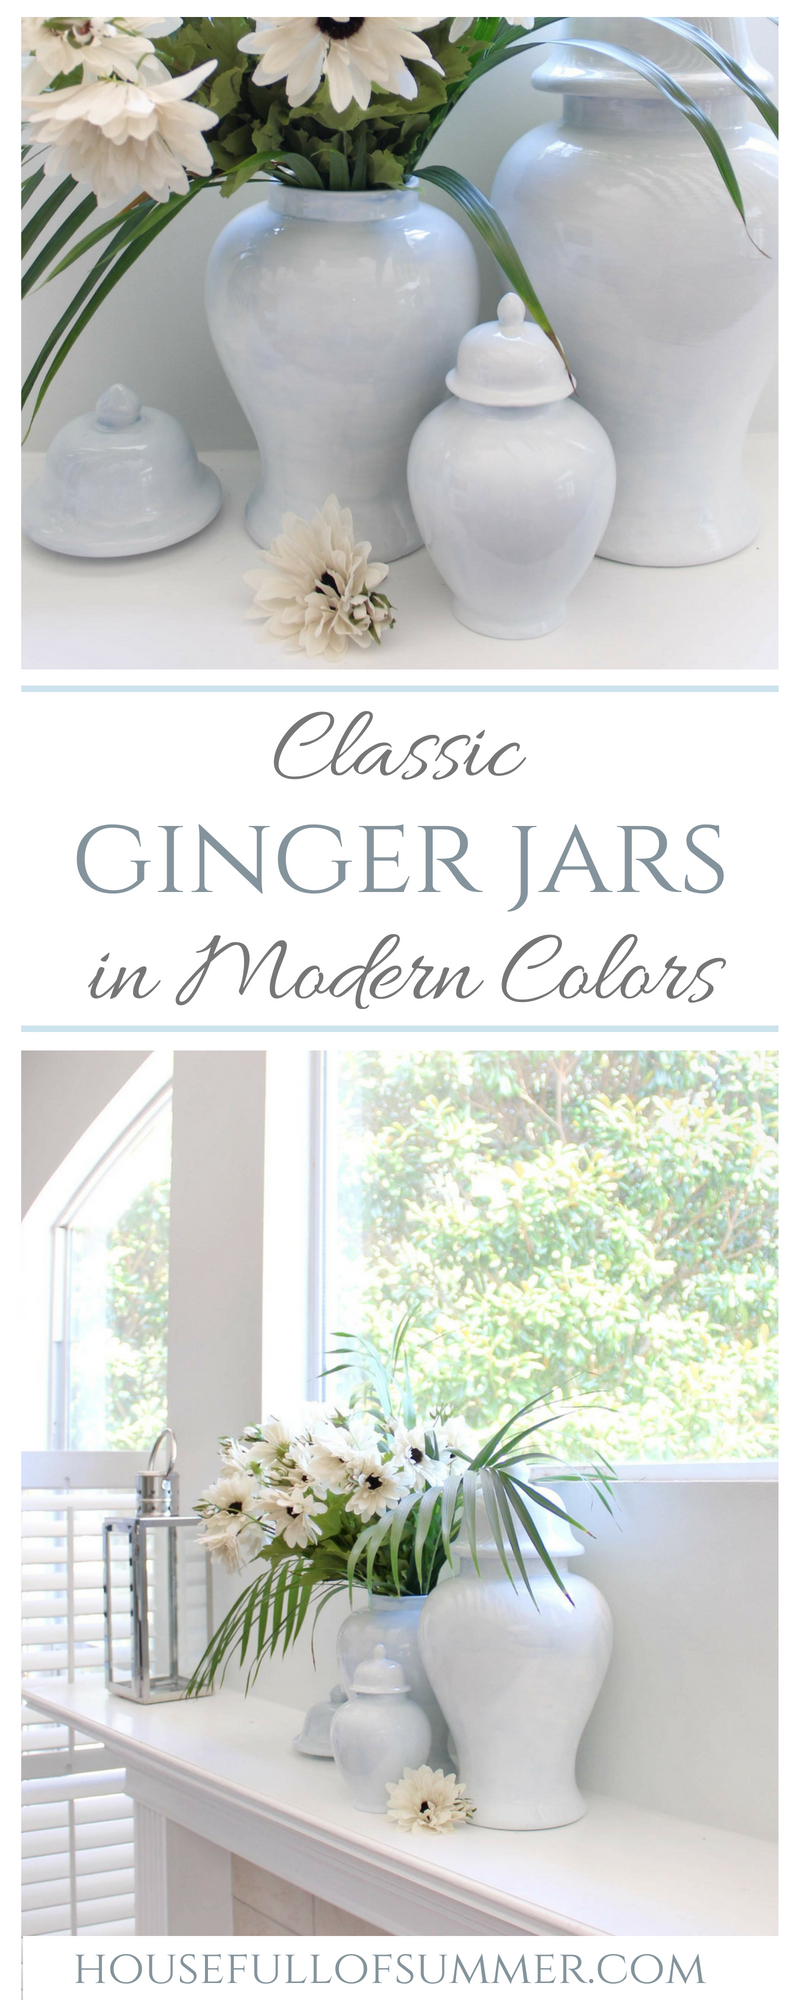 Classic Ginger Jars in Modern Colors | House Full of Summer - Lo Home decor, transitional mantel, classic decor, coastal home interior, Palm Beach chic design, Southern style, blue ginger jars